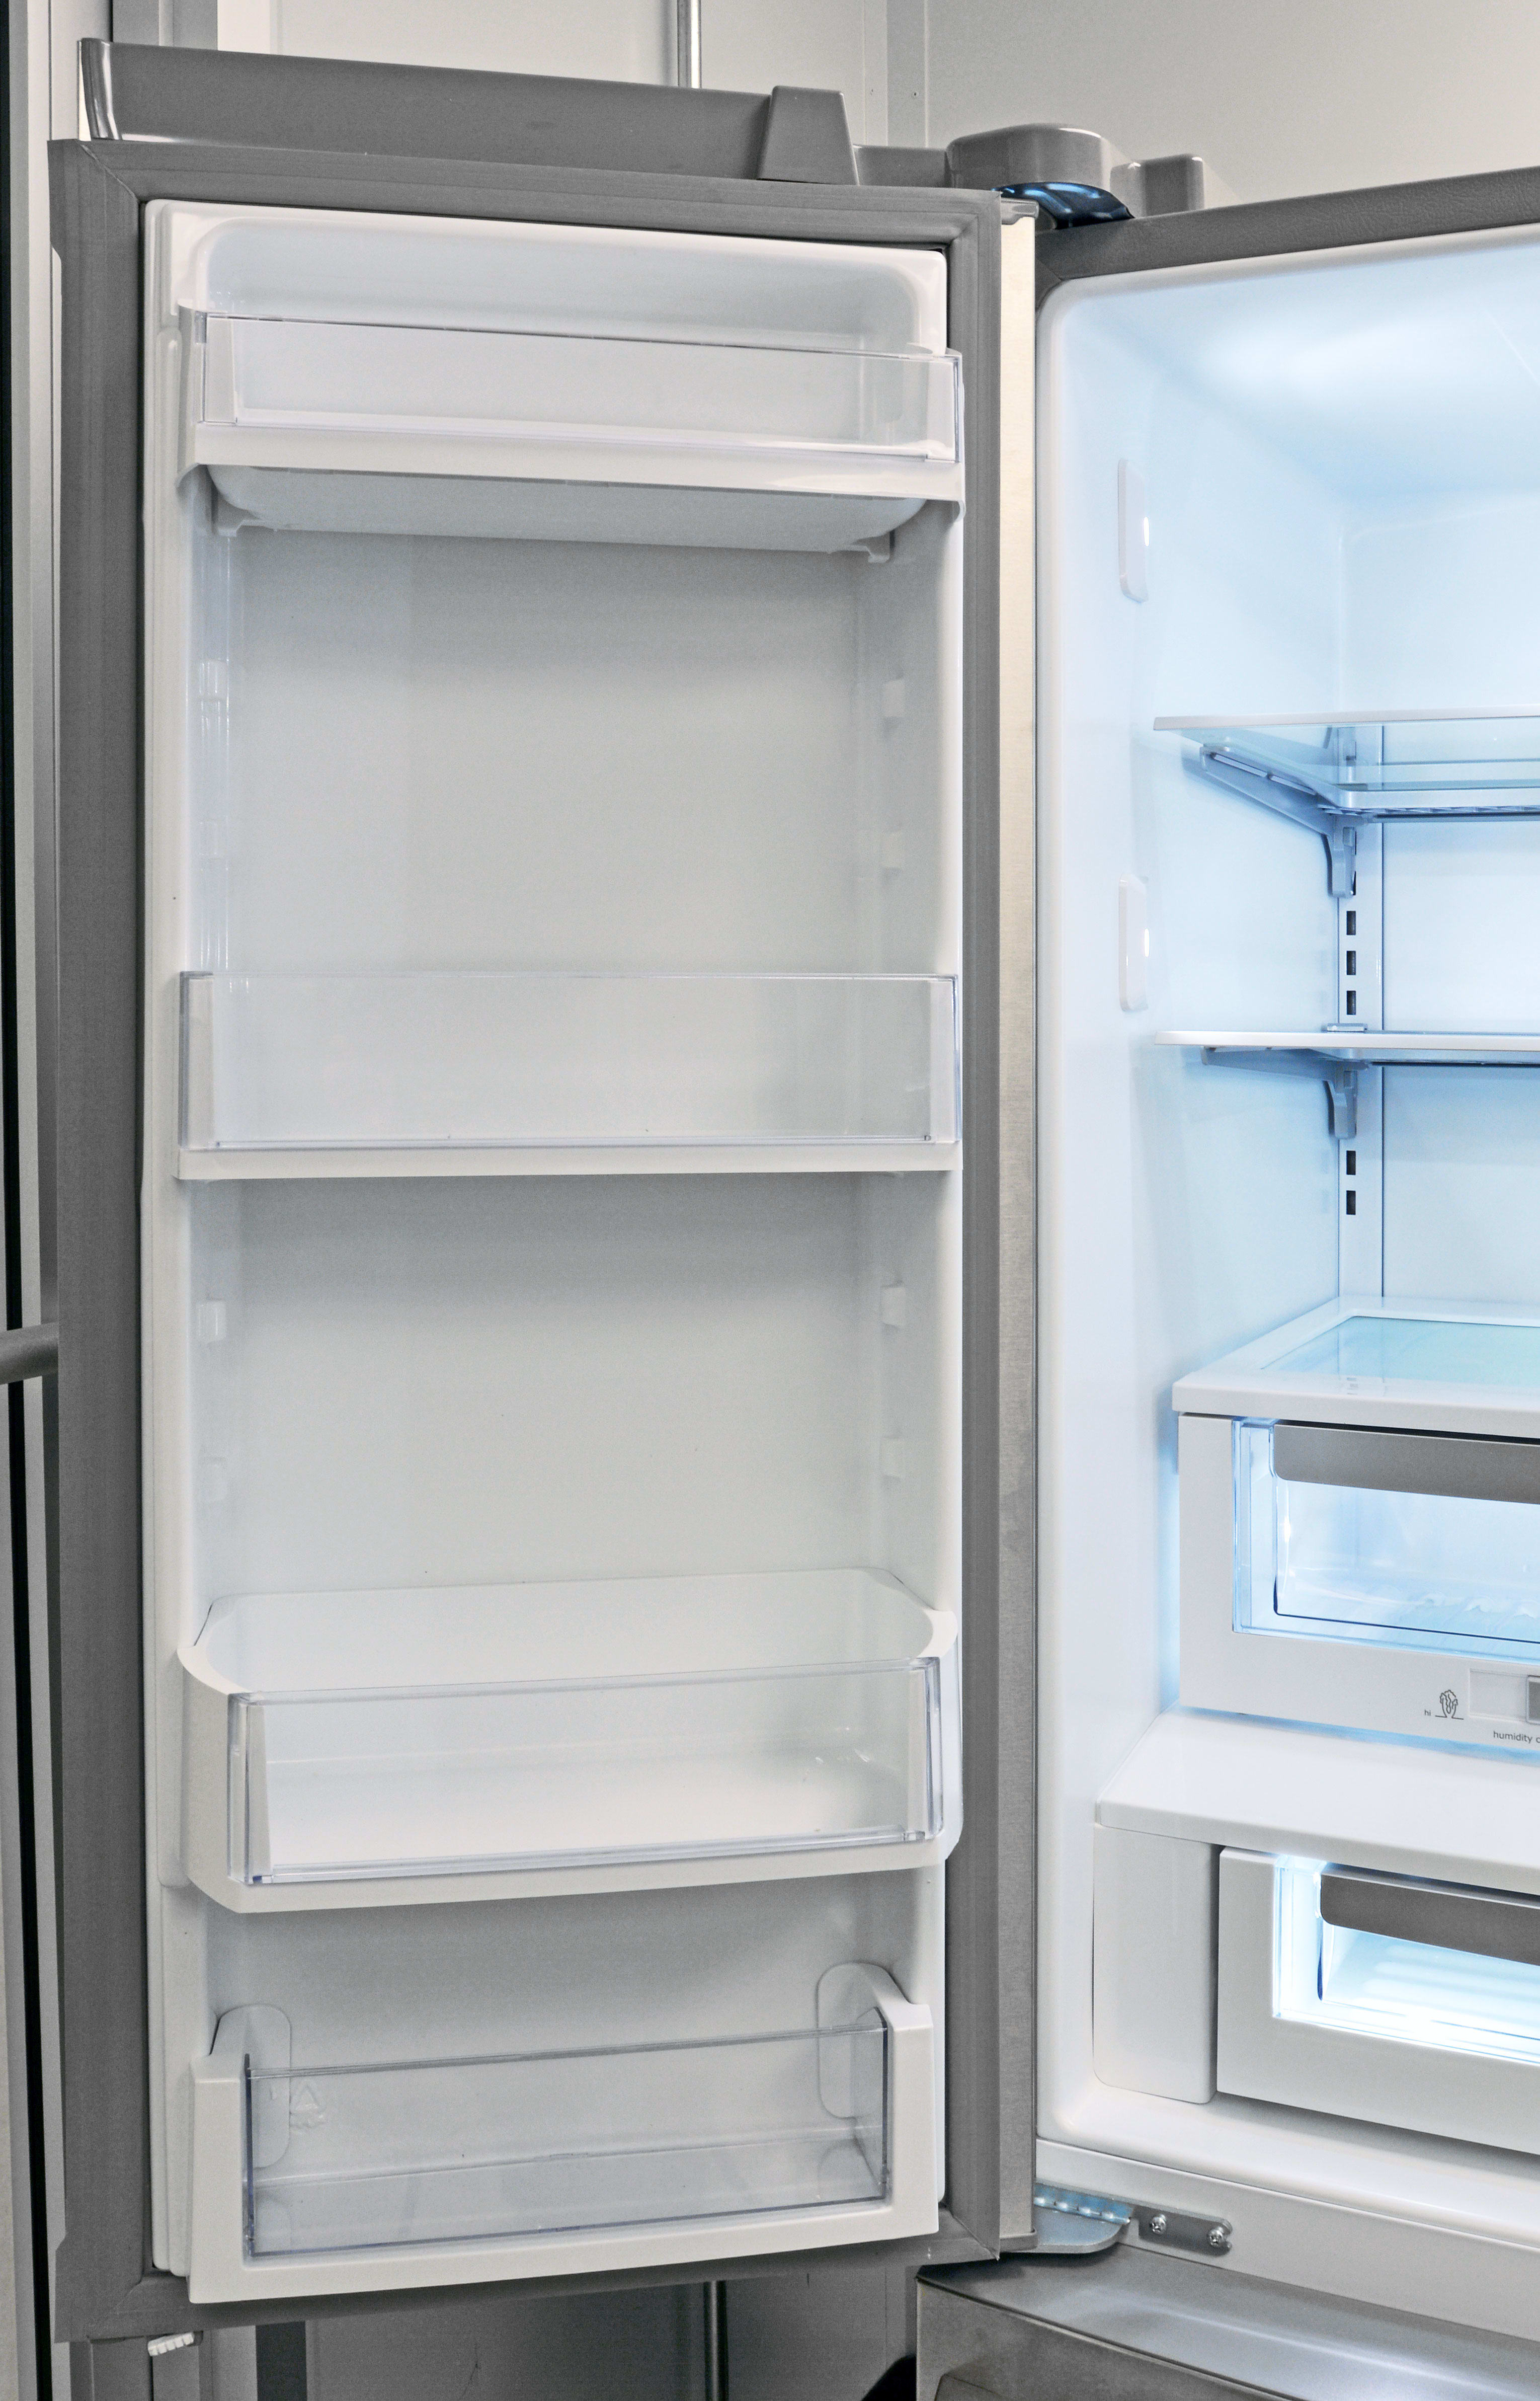 Models that lack a through-the-door dispenser has door shelving on the left that mirrors what you get on the right.